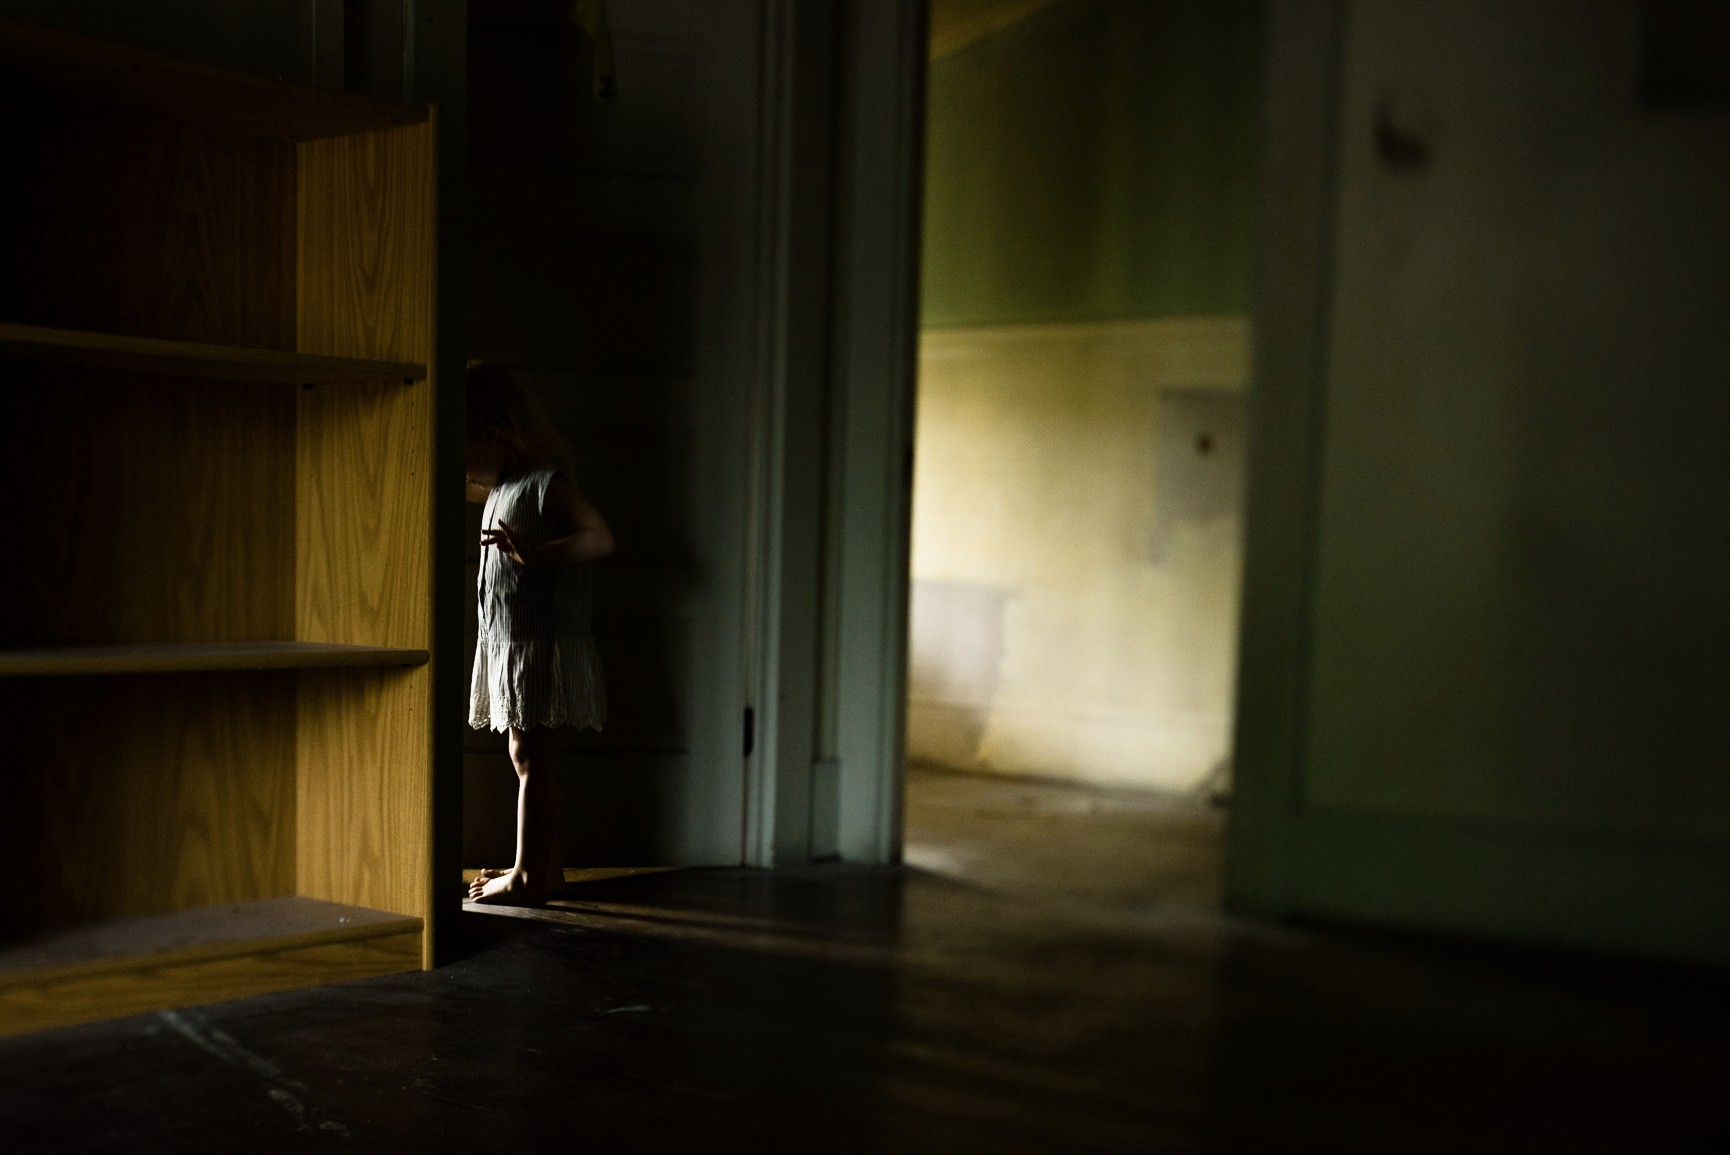 Everyday-Life-by-Sarah-Wilkerson-1730px-8094